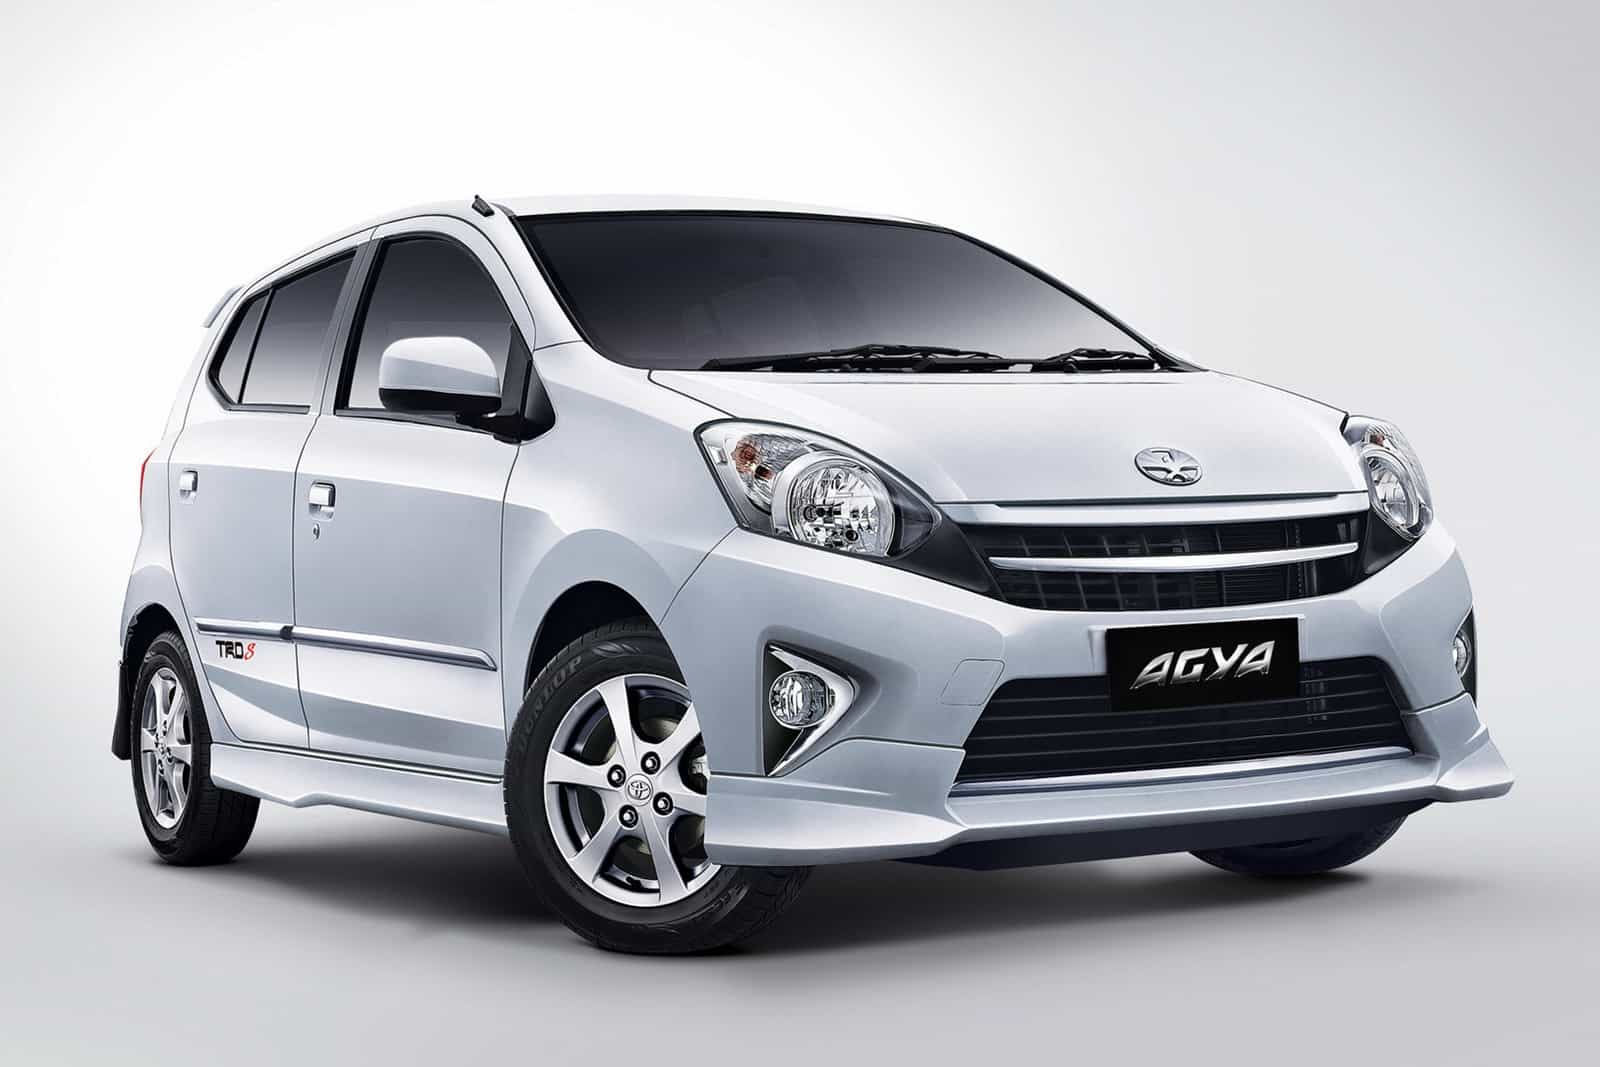 grand new avanza semisena toyota yaris trd supercharger kit sell agya car from indonesia by pt dunia barusa cheap price